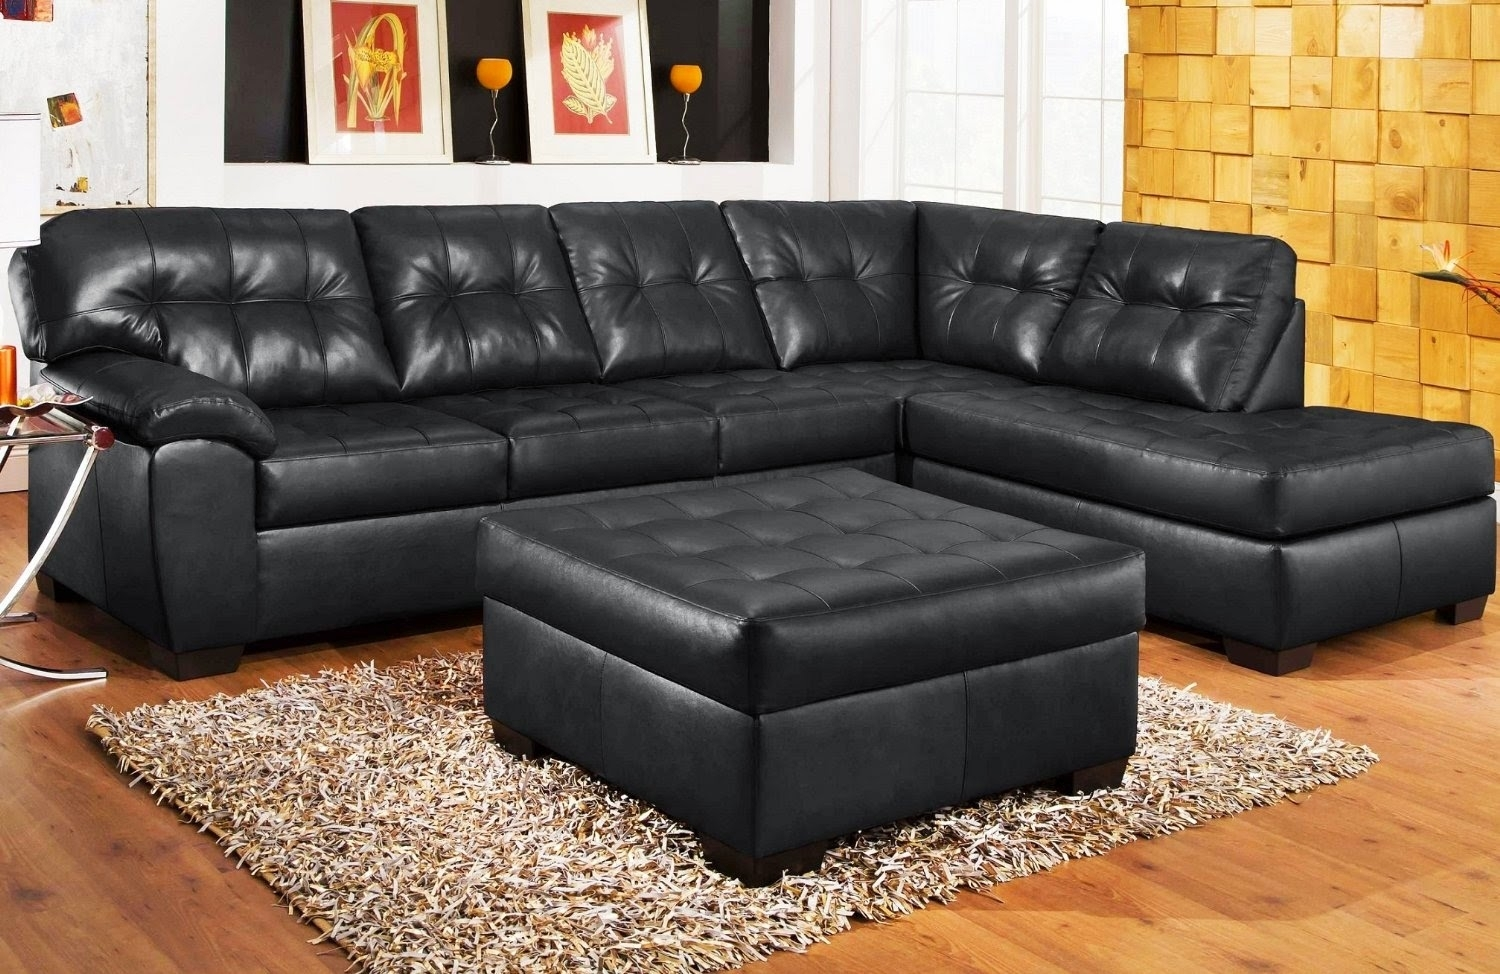 beautiful comes and shop on me that chaise couches recliner pieces room near couch furniture reclining best full size microfiber in brown leather walmart with sectionals sale of rs laine sectional oversized sofa sofas modular sleeper living lounger crlaine ideas cr www square